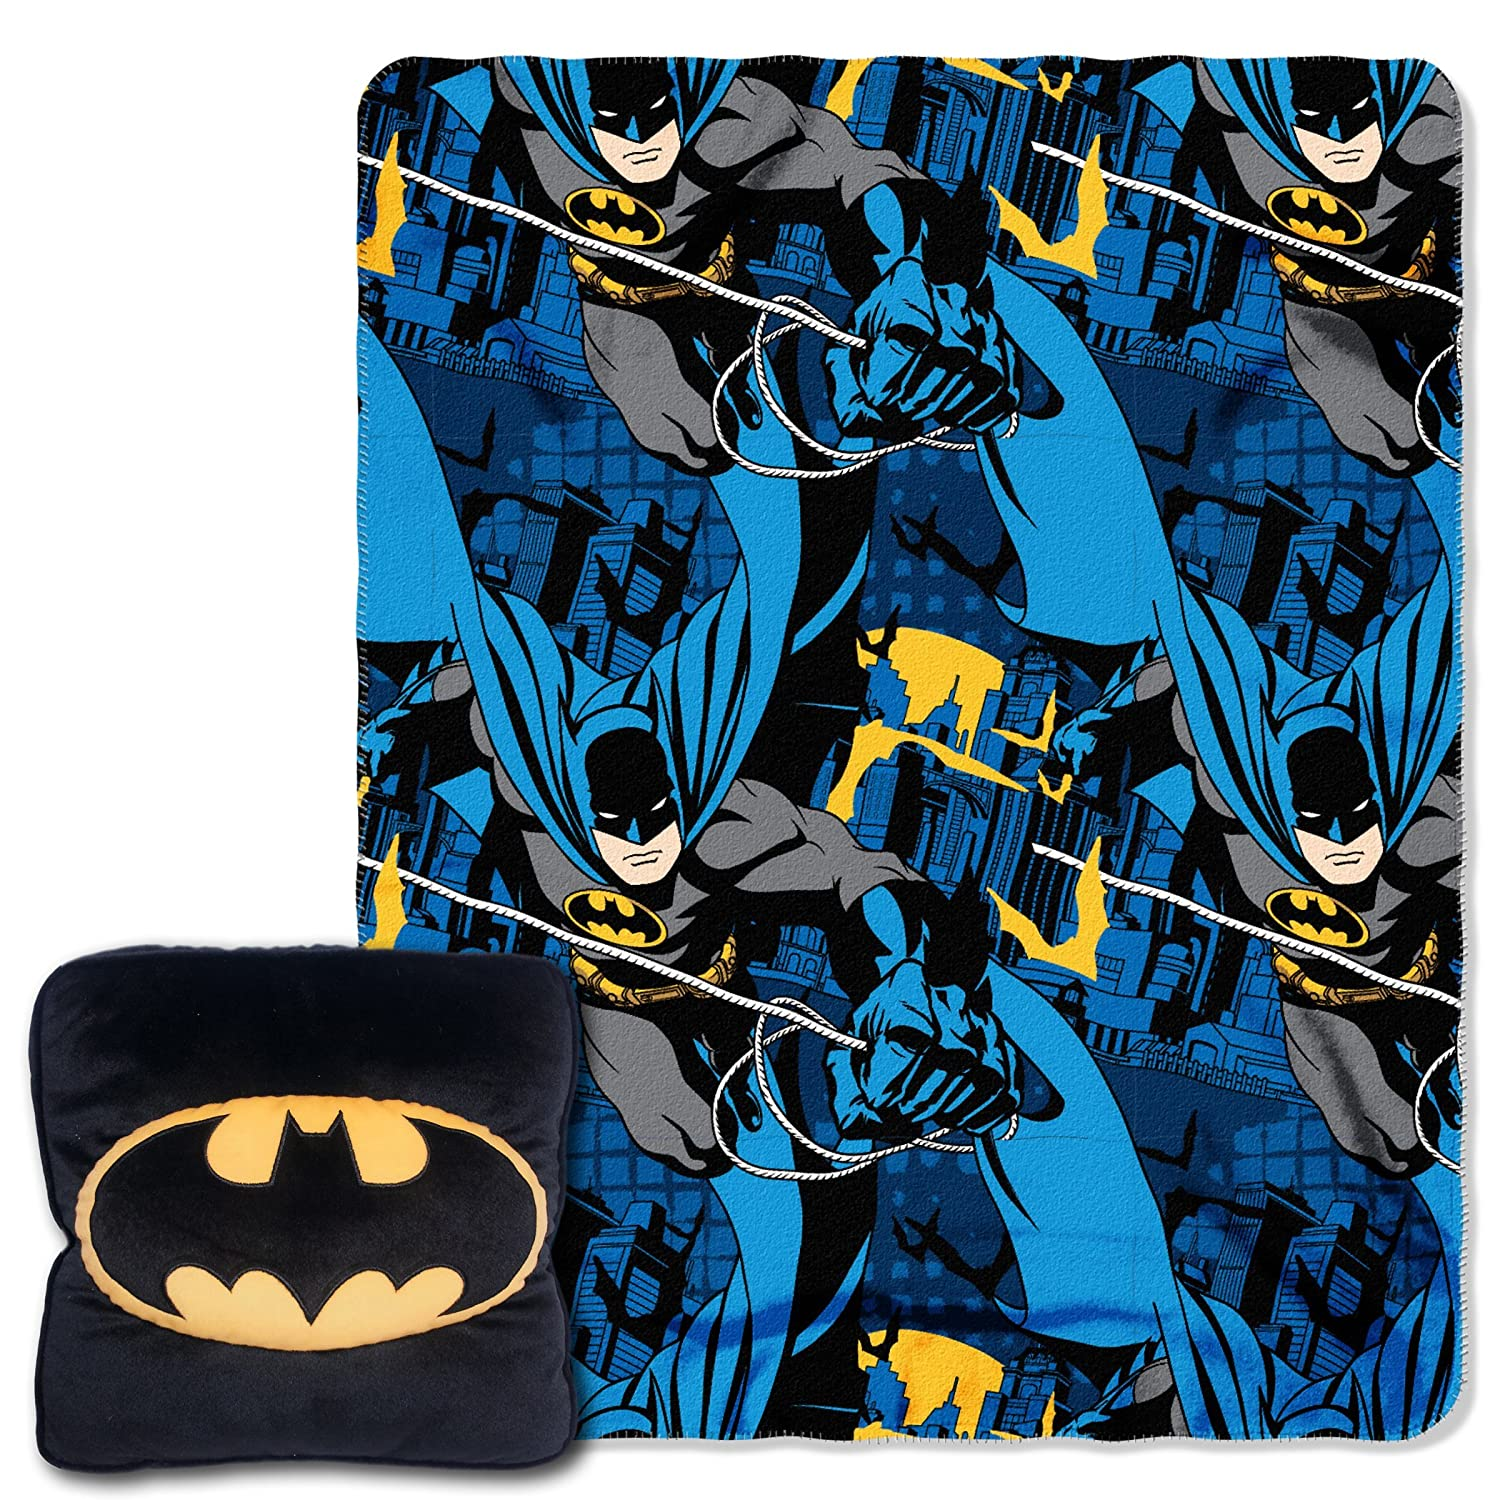 "Northwest Warner Brothers' Batman,Night Shield 3D 14"" by 14"" Pillow and 40"" by 50"" Fleece Throw in Pocket Set by The Company The Northwest Company 1BAT136000001RET"